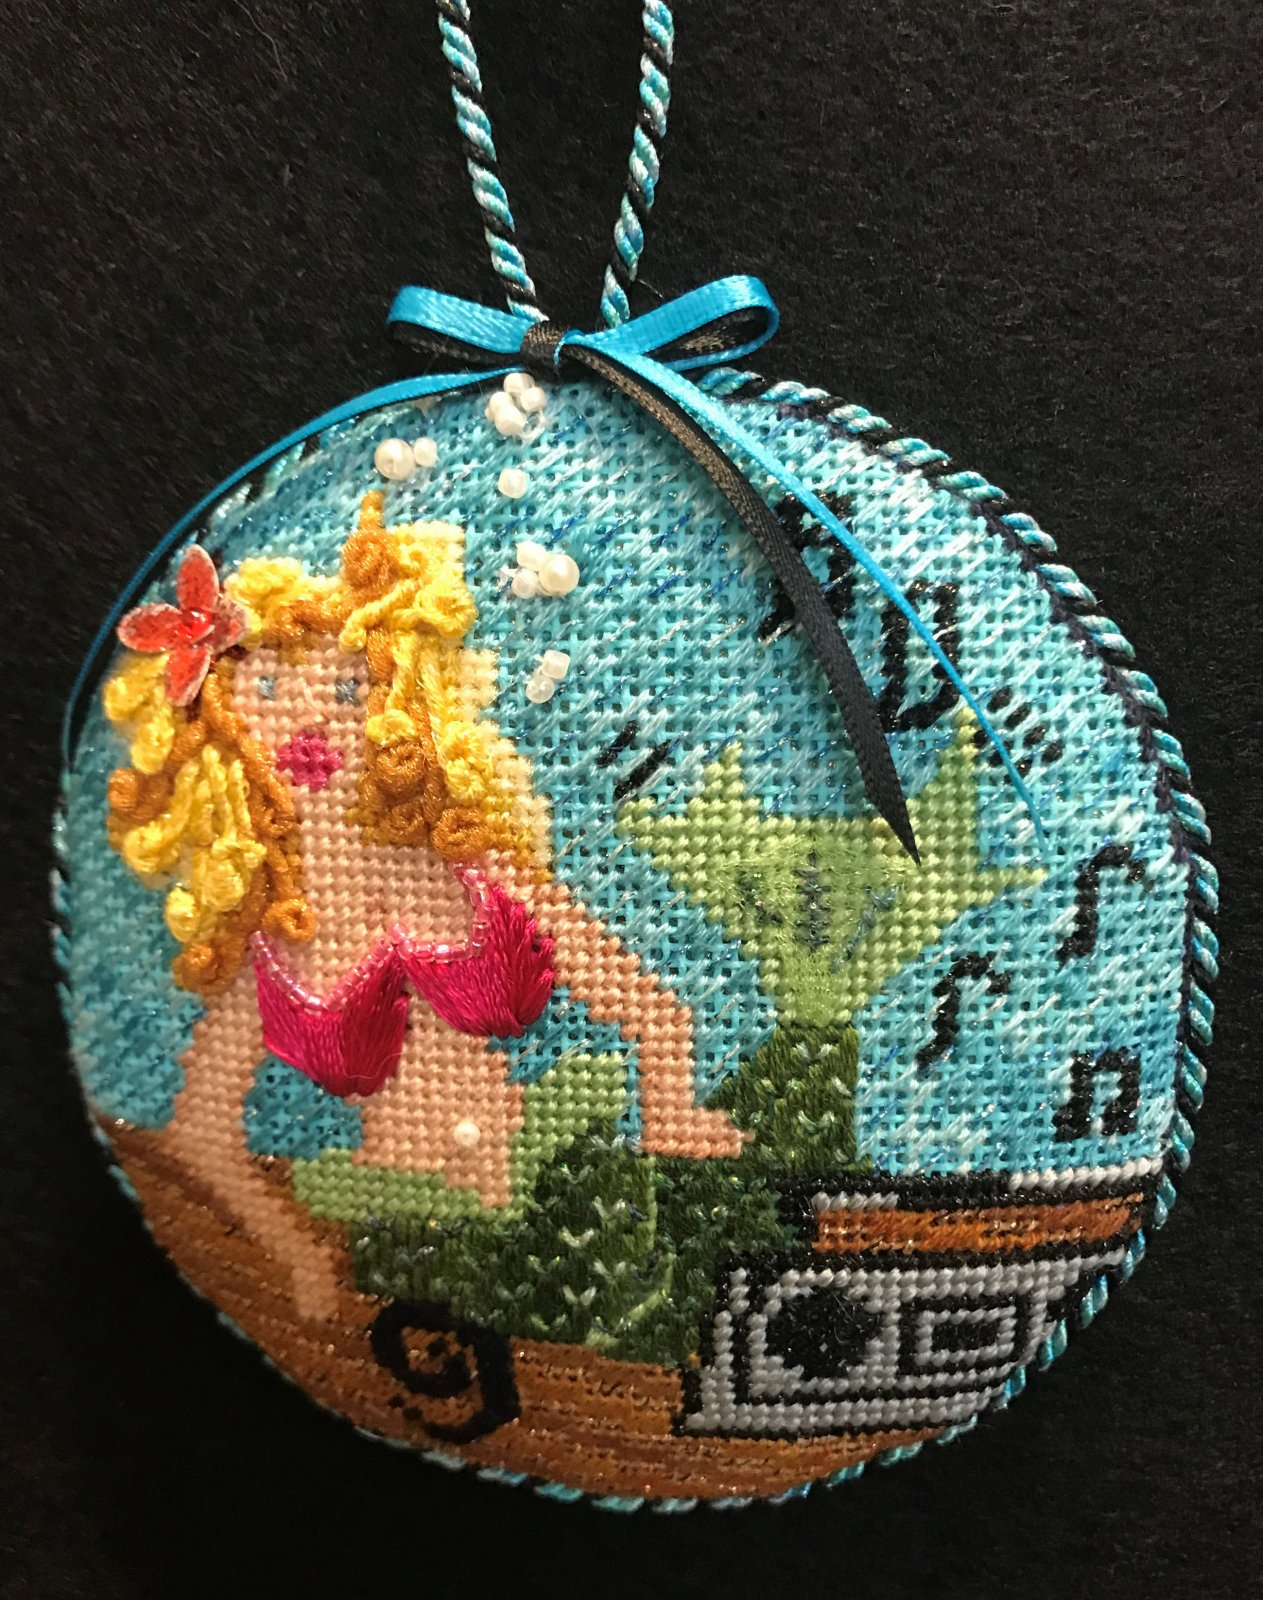 #9 Mermaid Ornament - stitched by Stacey G.